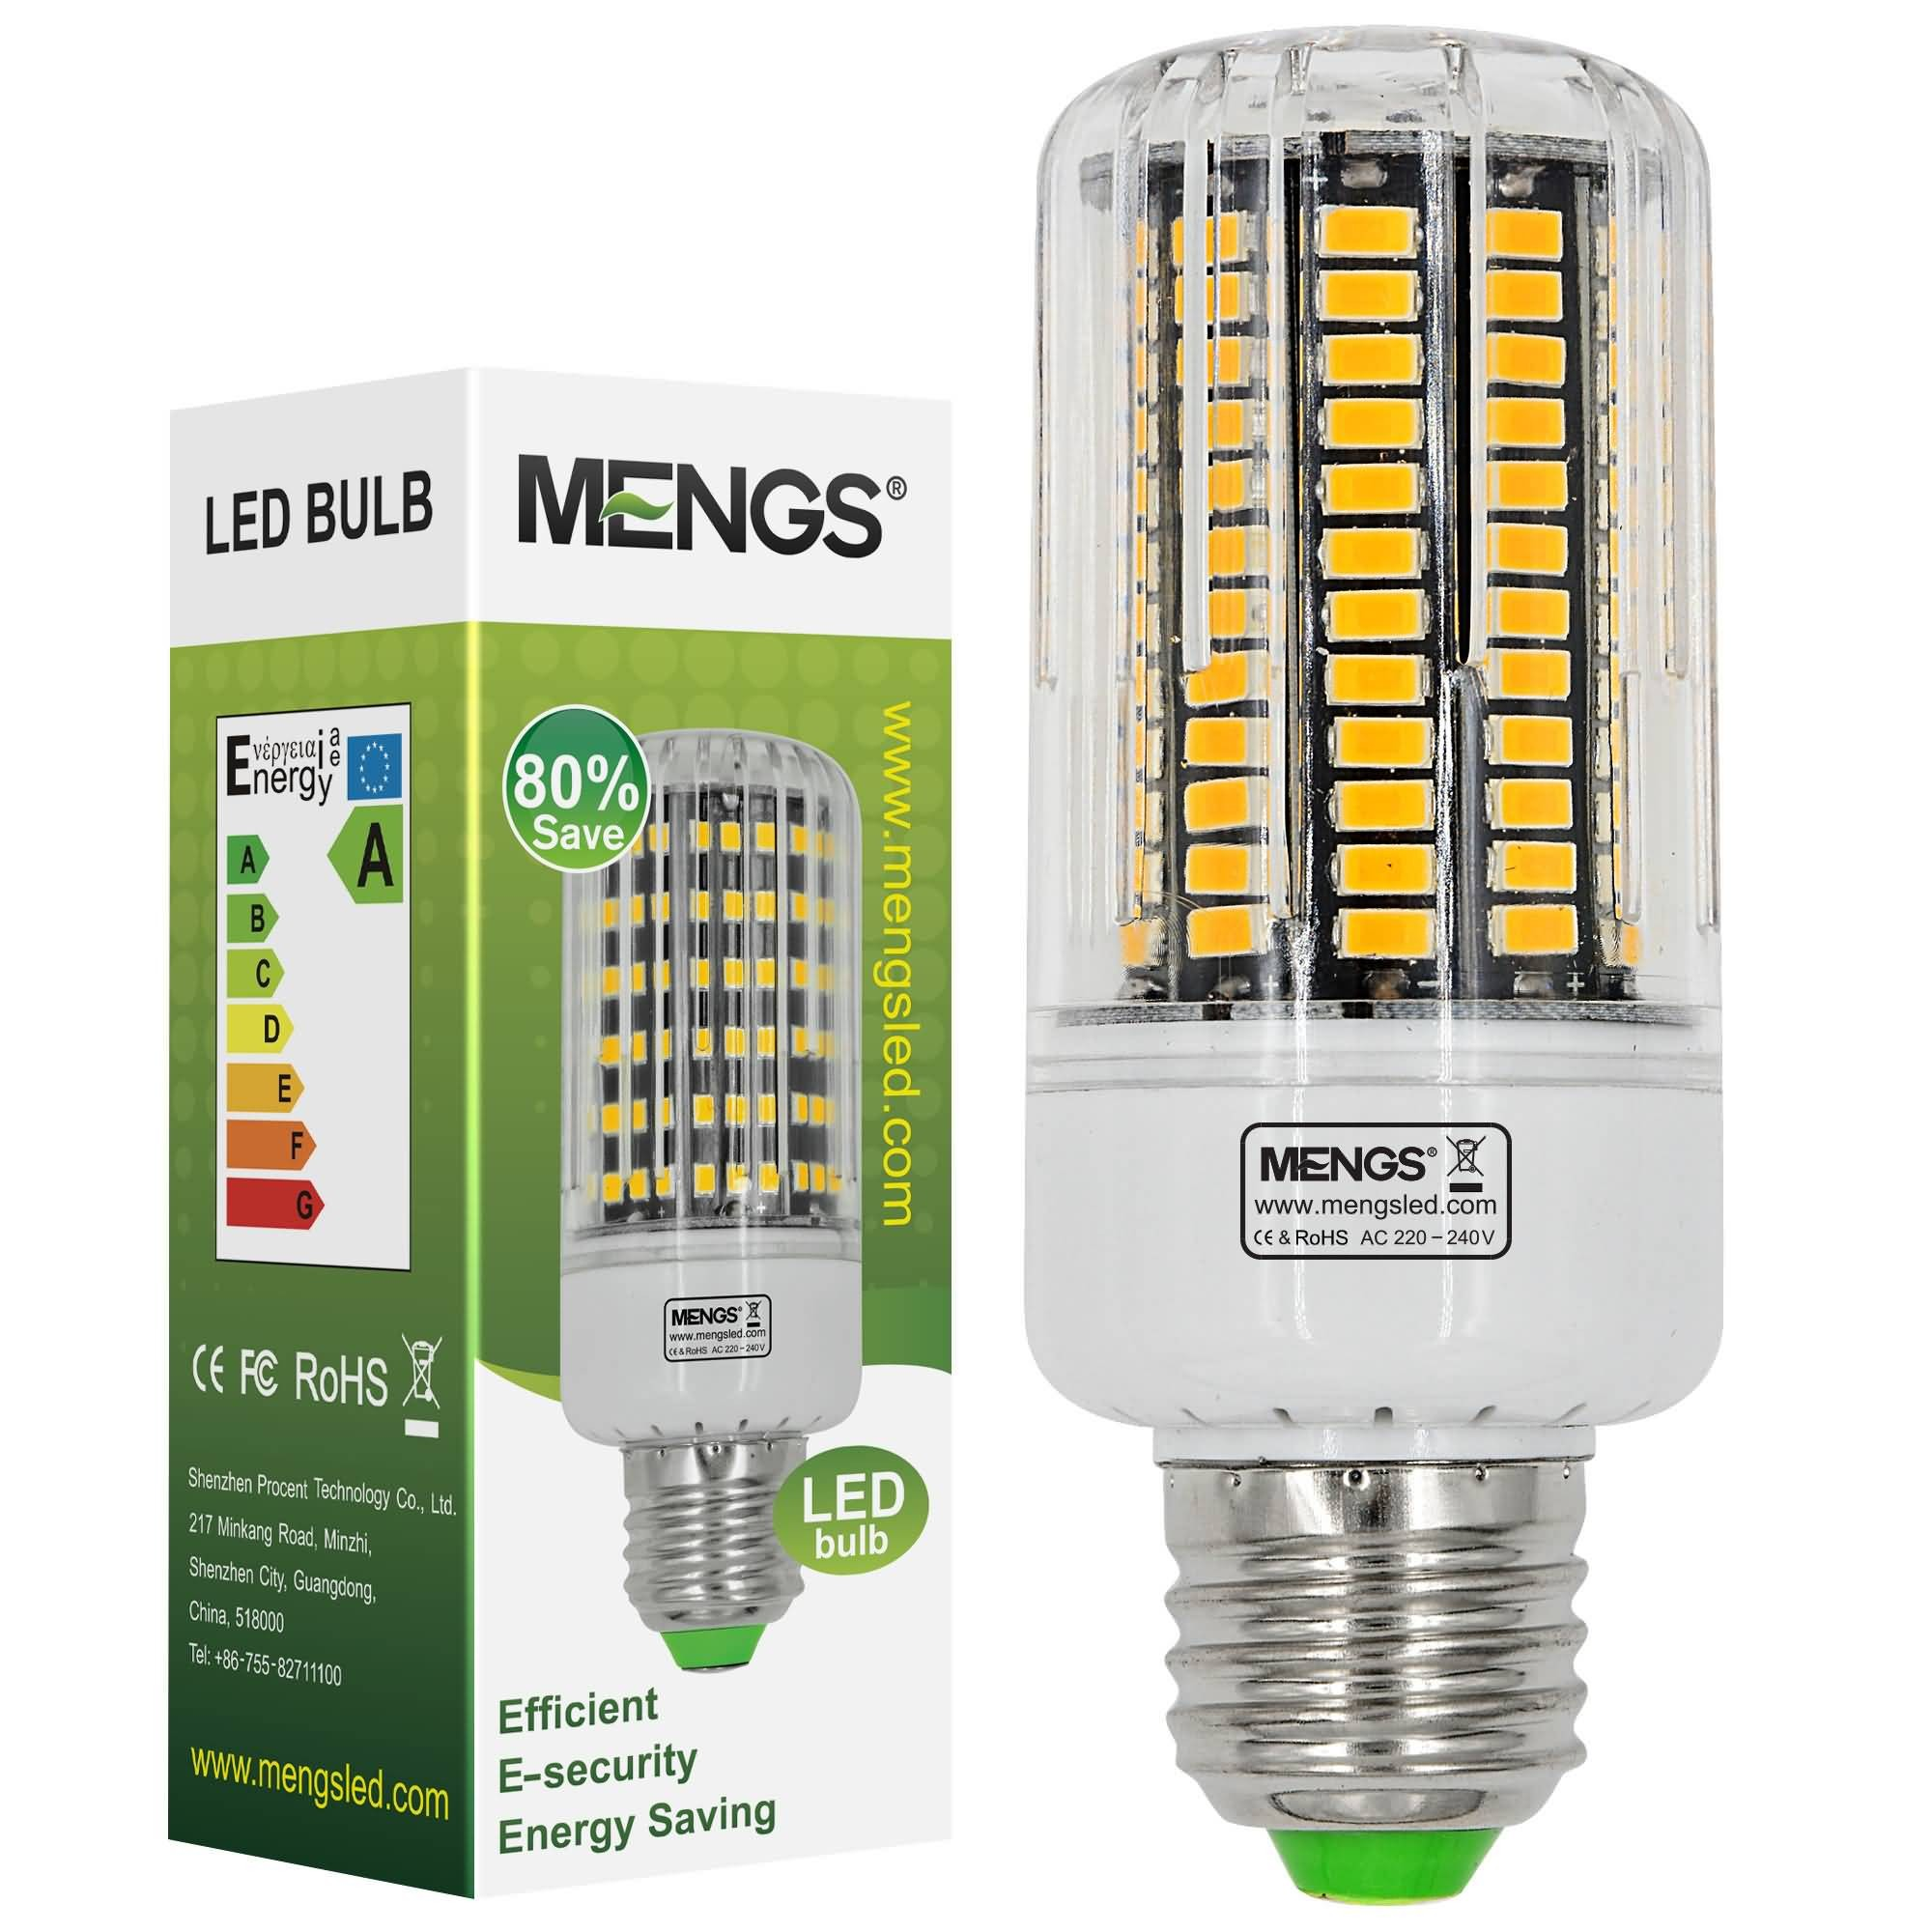 Cool white vs warm white led lights - Mengsled Mengs E27 18w Led Corn Light 136x 5733 Smd Led Bulb Lamp In Warm White Cool White Energy Saving Light